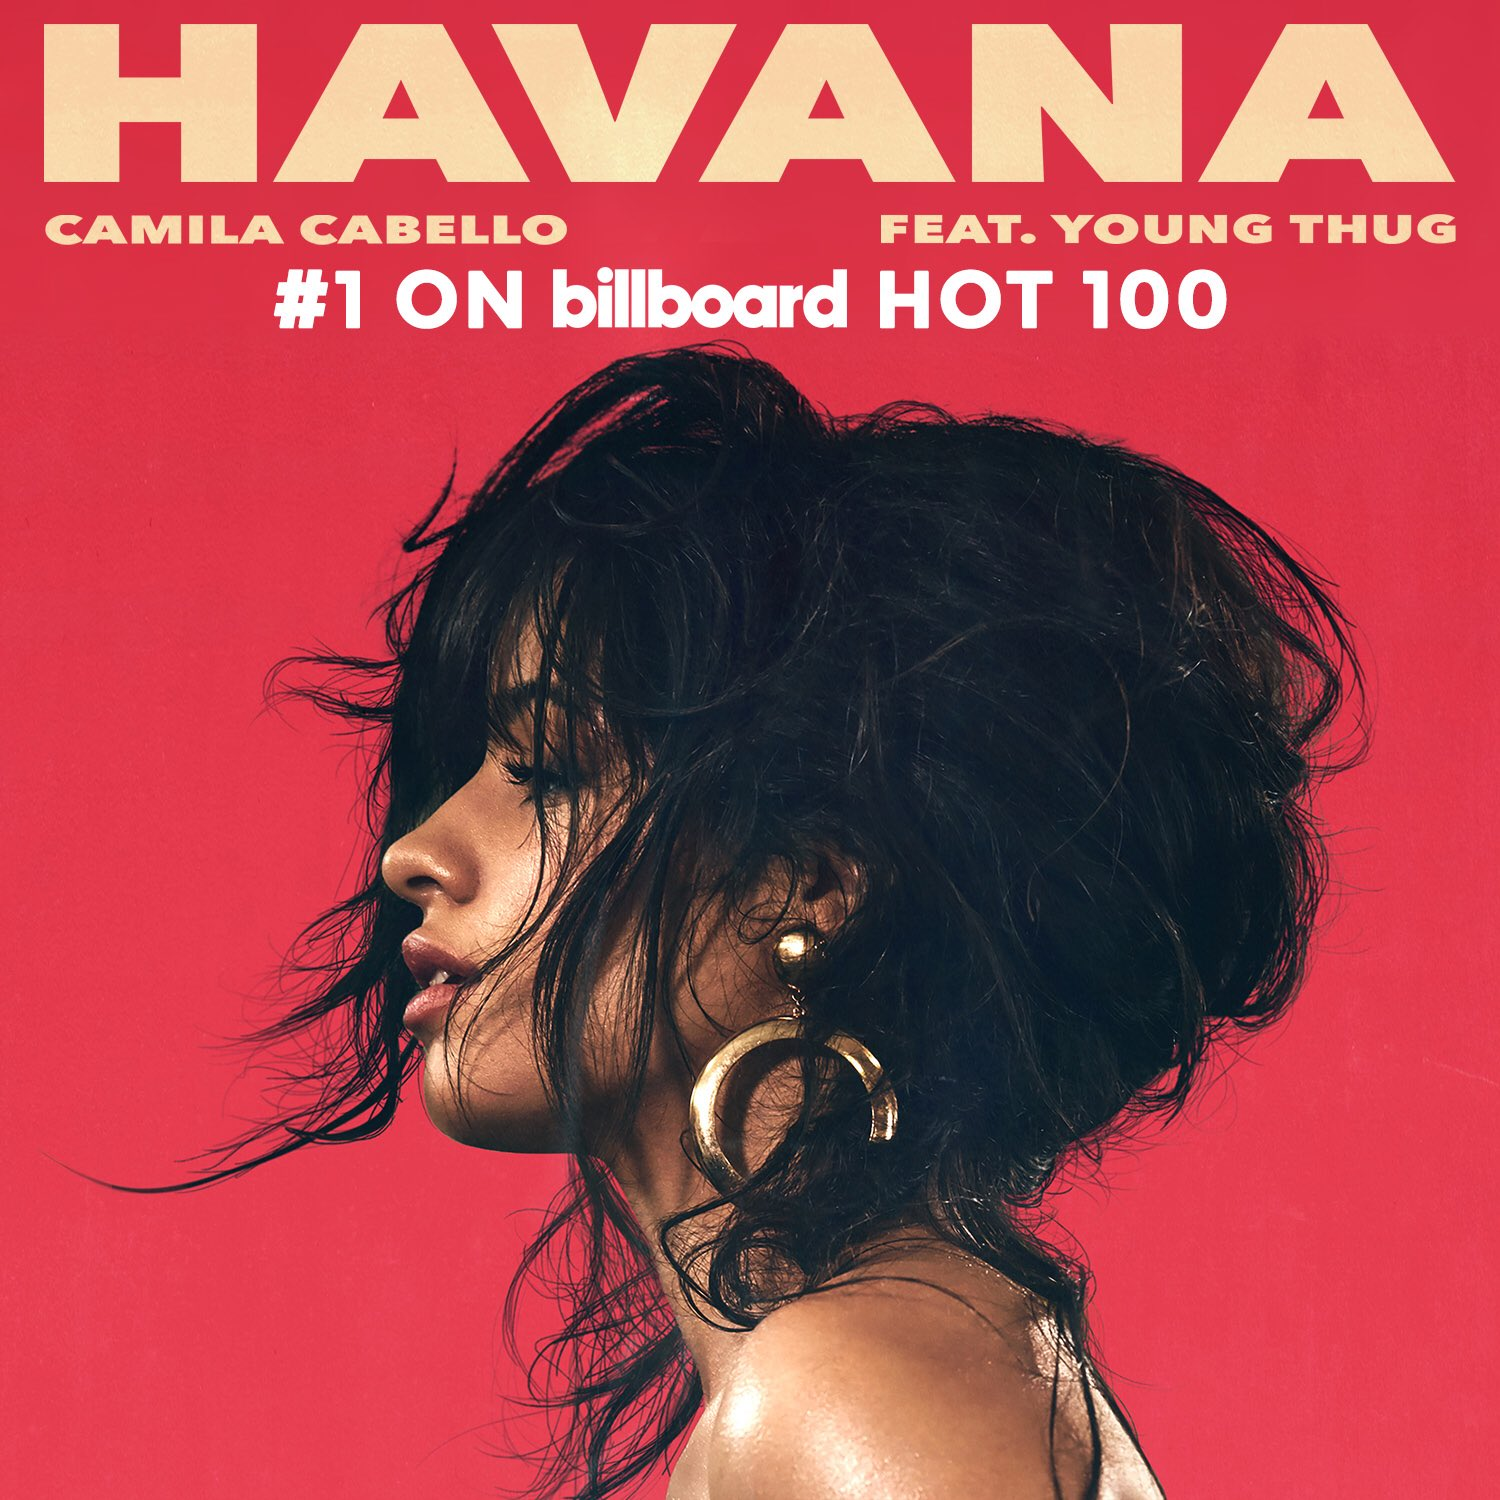 HAVANA OH NA NA ������ congrats to @Camila_Cabello for having the #1 song on the @billboard hot 100! #HAVANA https://t.co/xp5wWrHC7d